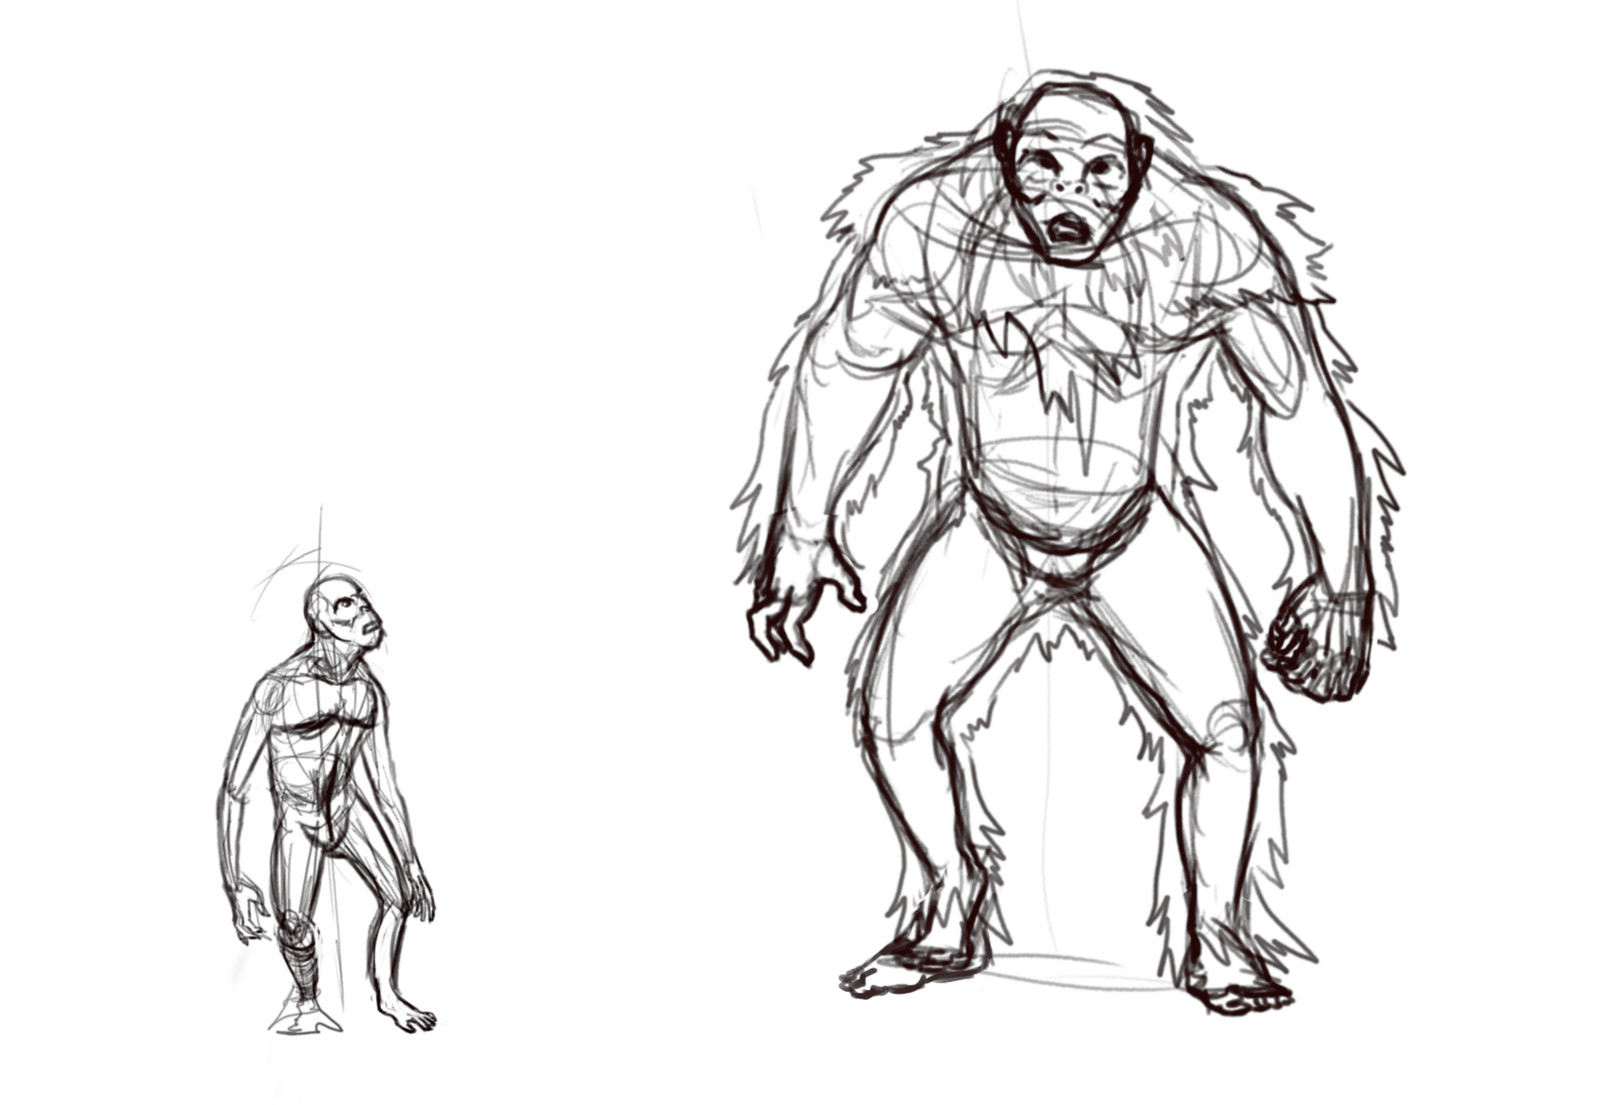 The sketches for the Orang Pendek and the Yeti.